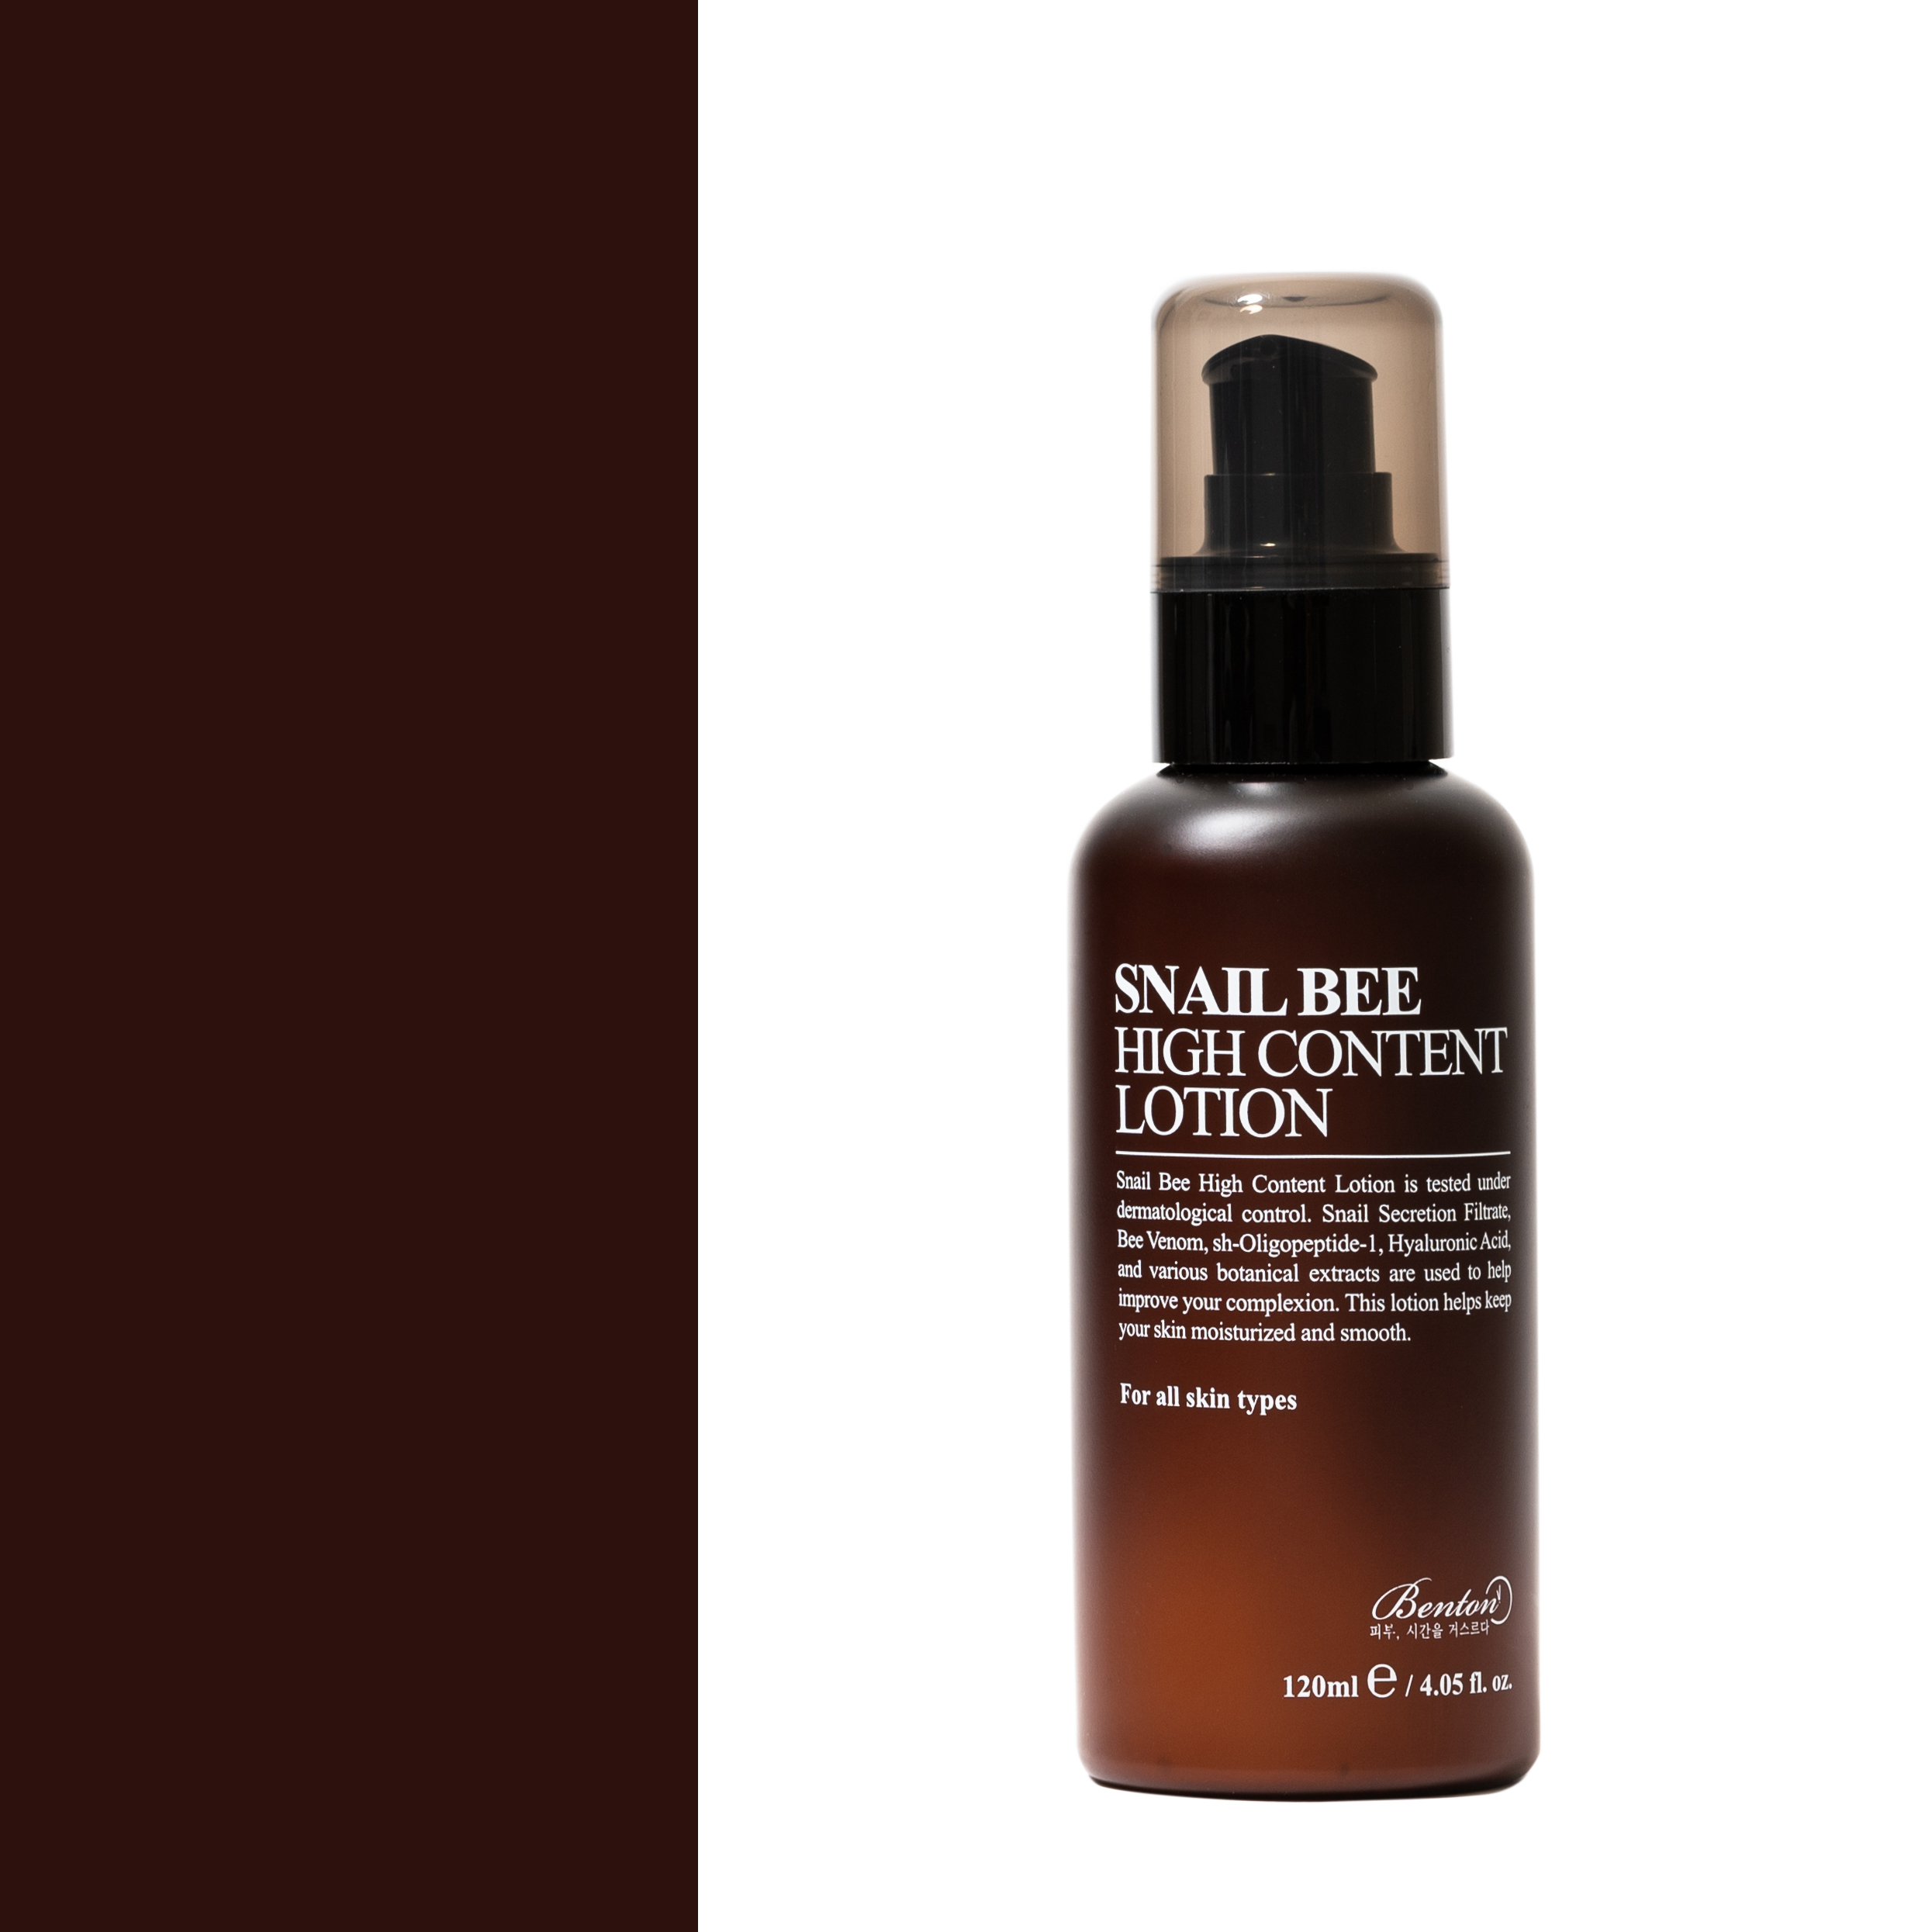 Benton Snail Bee High Content Lotion 120ml Canadian Seller – Shop Propr Life+Style